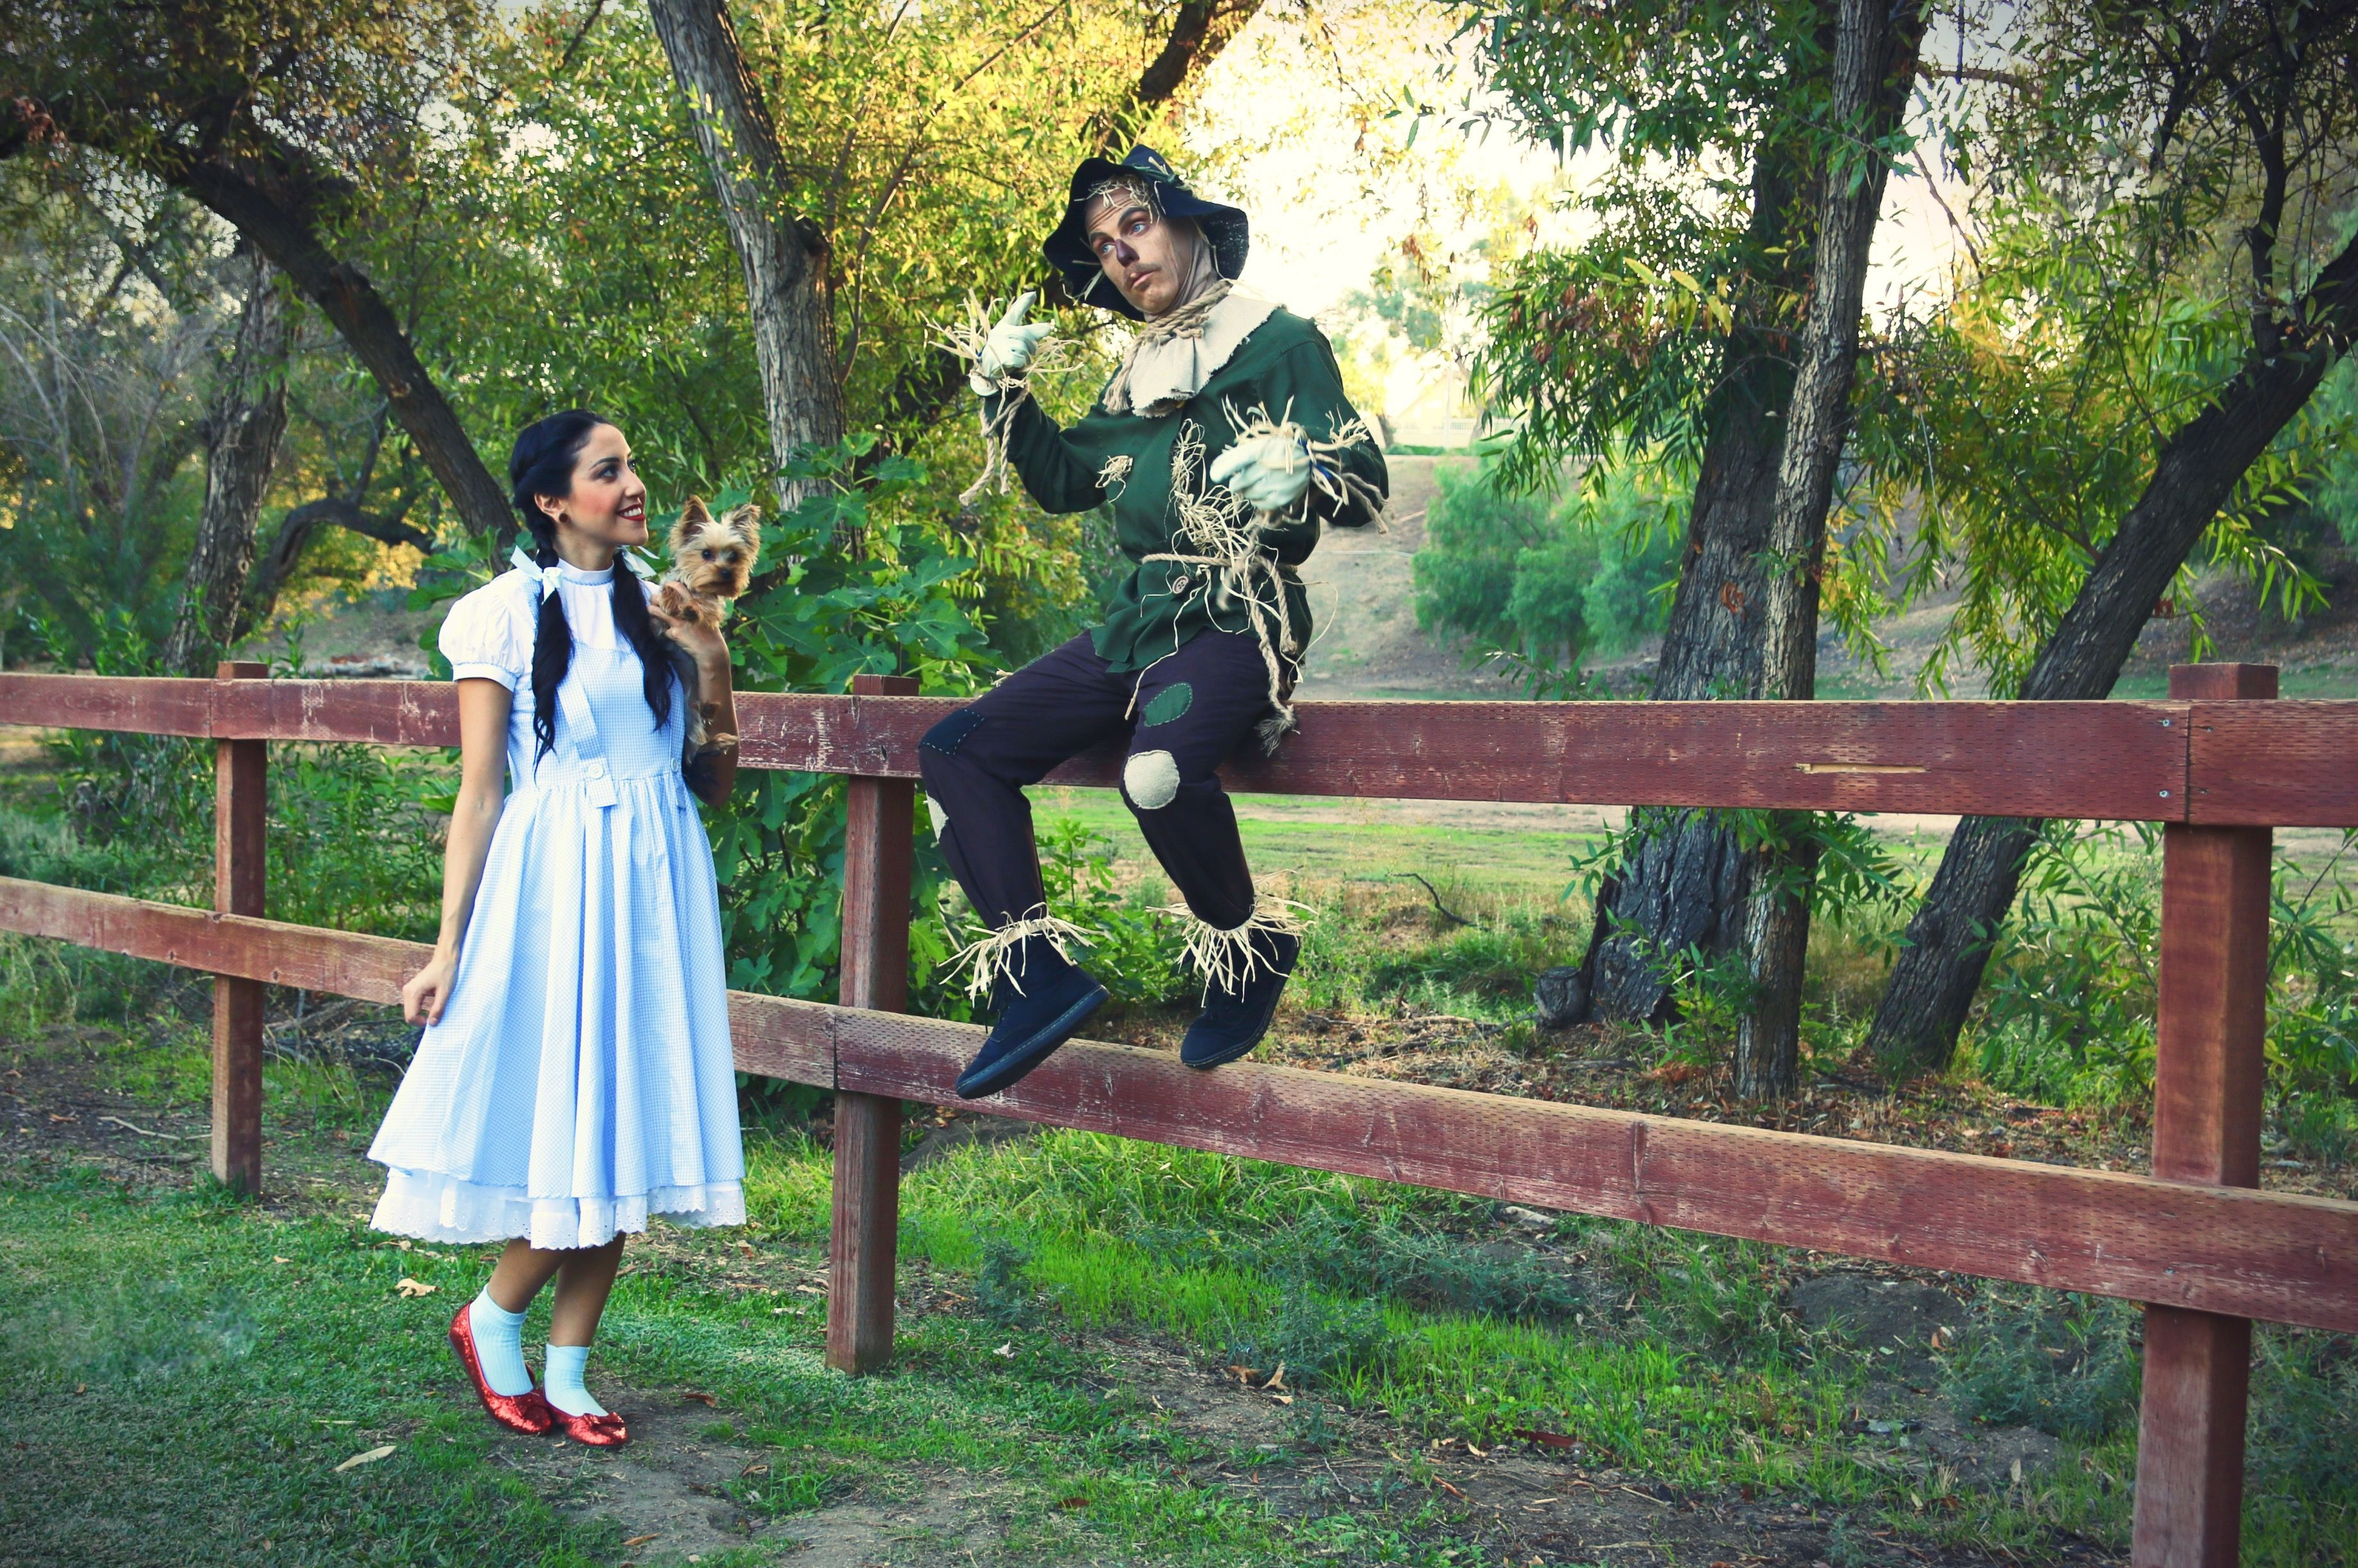 Wizard of OZ Costumes  #scarecrowcostumediy Dorothy and Scarecrow costumes. DIY couples costume idea. 2018 #scarecrowcostumediy